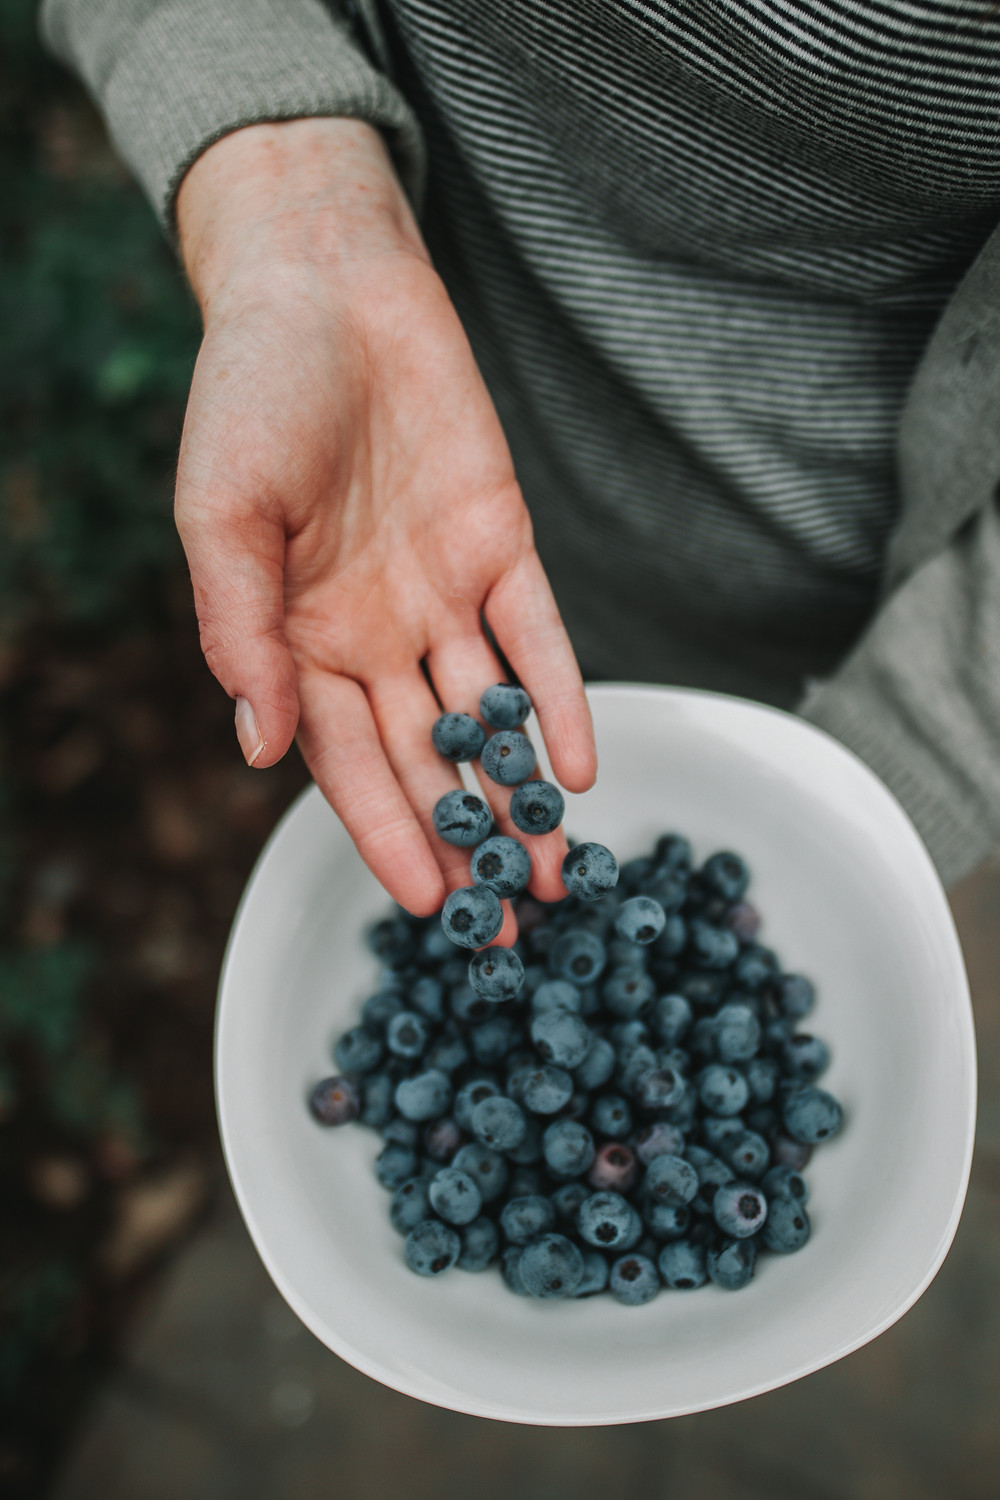 blueberries just picked and in a bowl